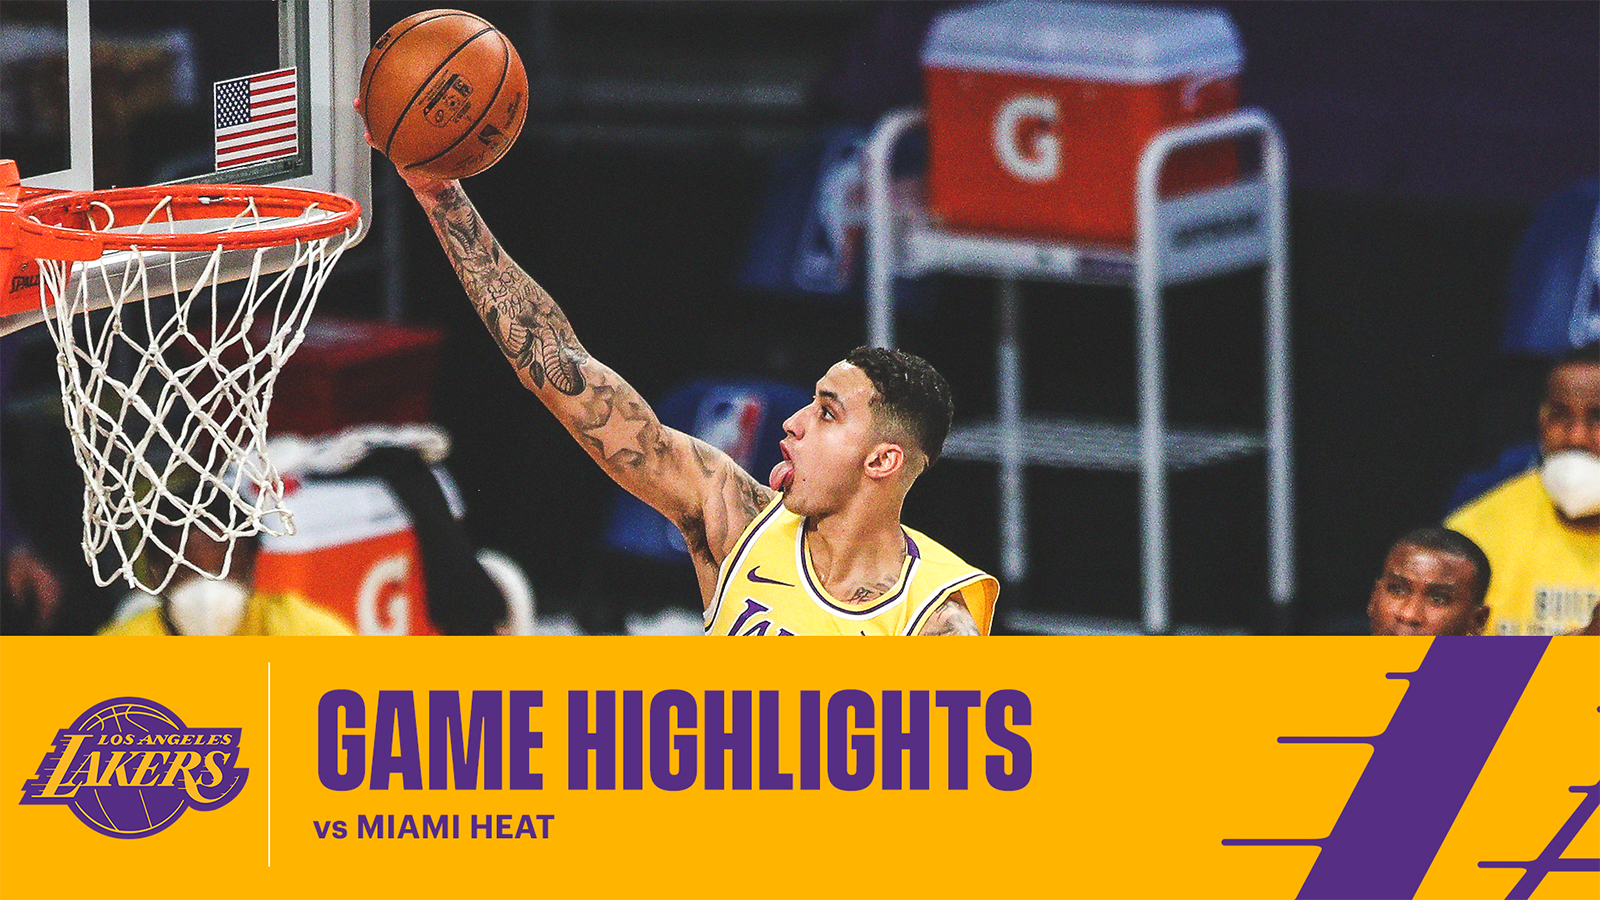 HIGHLIGHTS | Kyle Kuzma (23 pts, 4 reb) vs Miami Heat